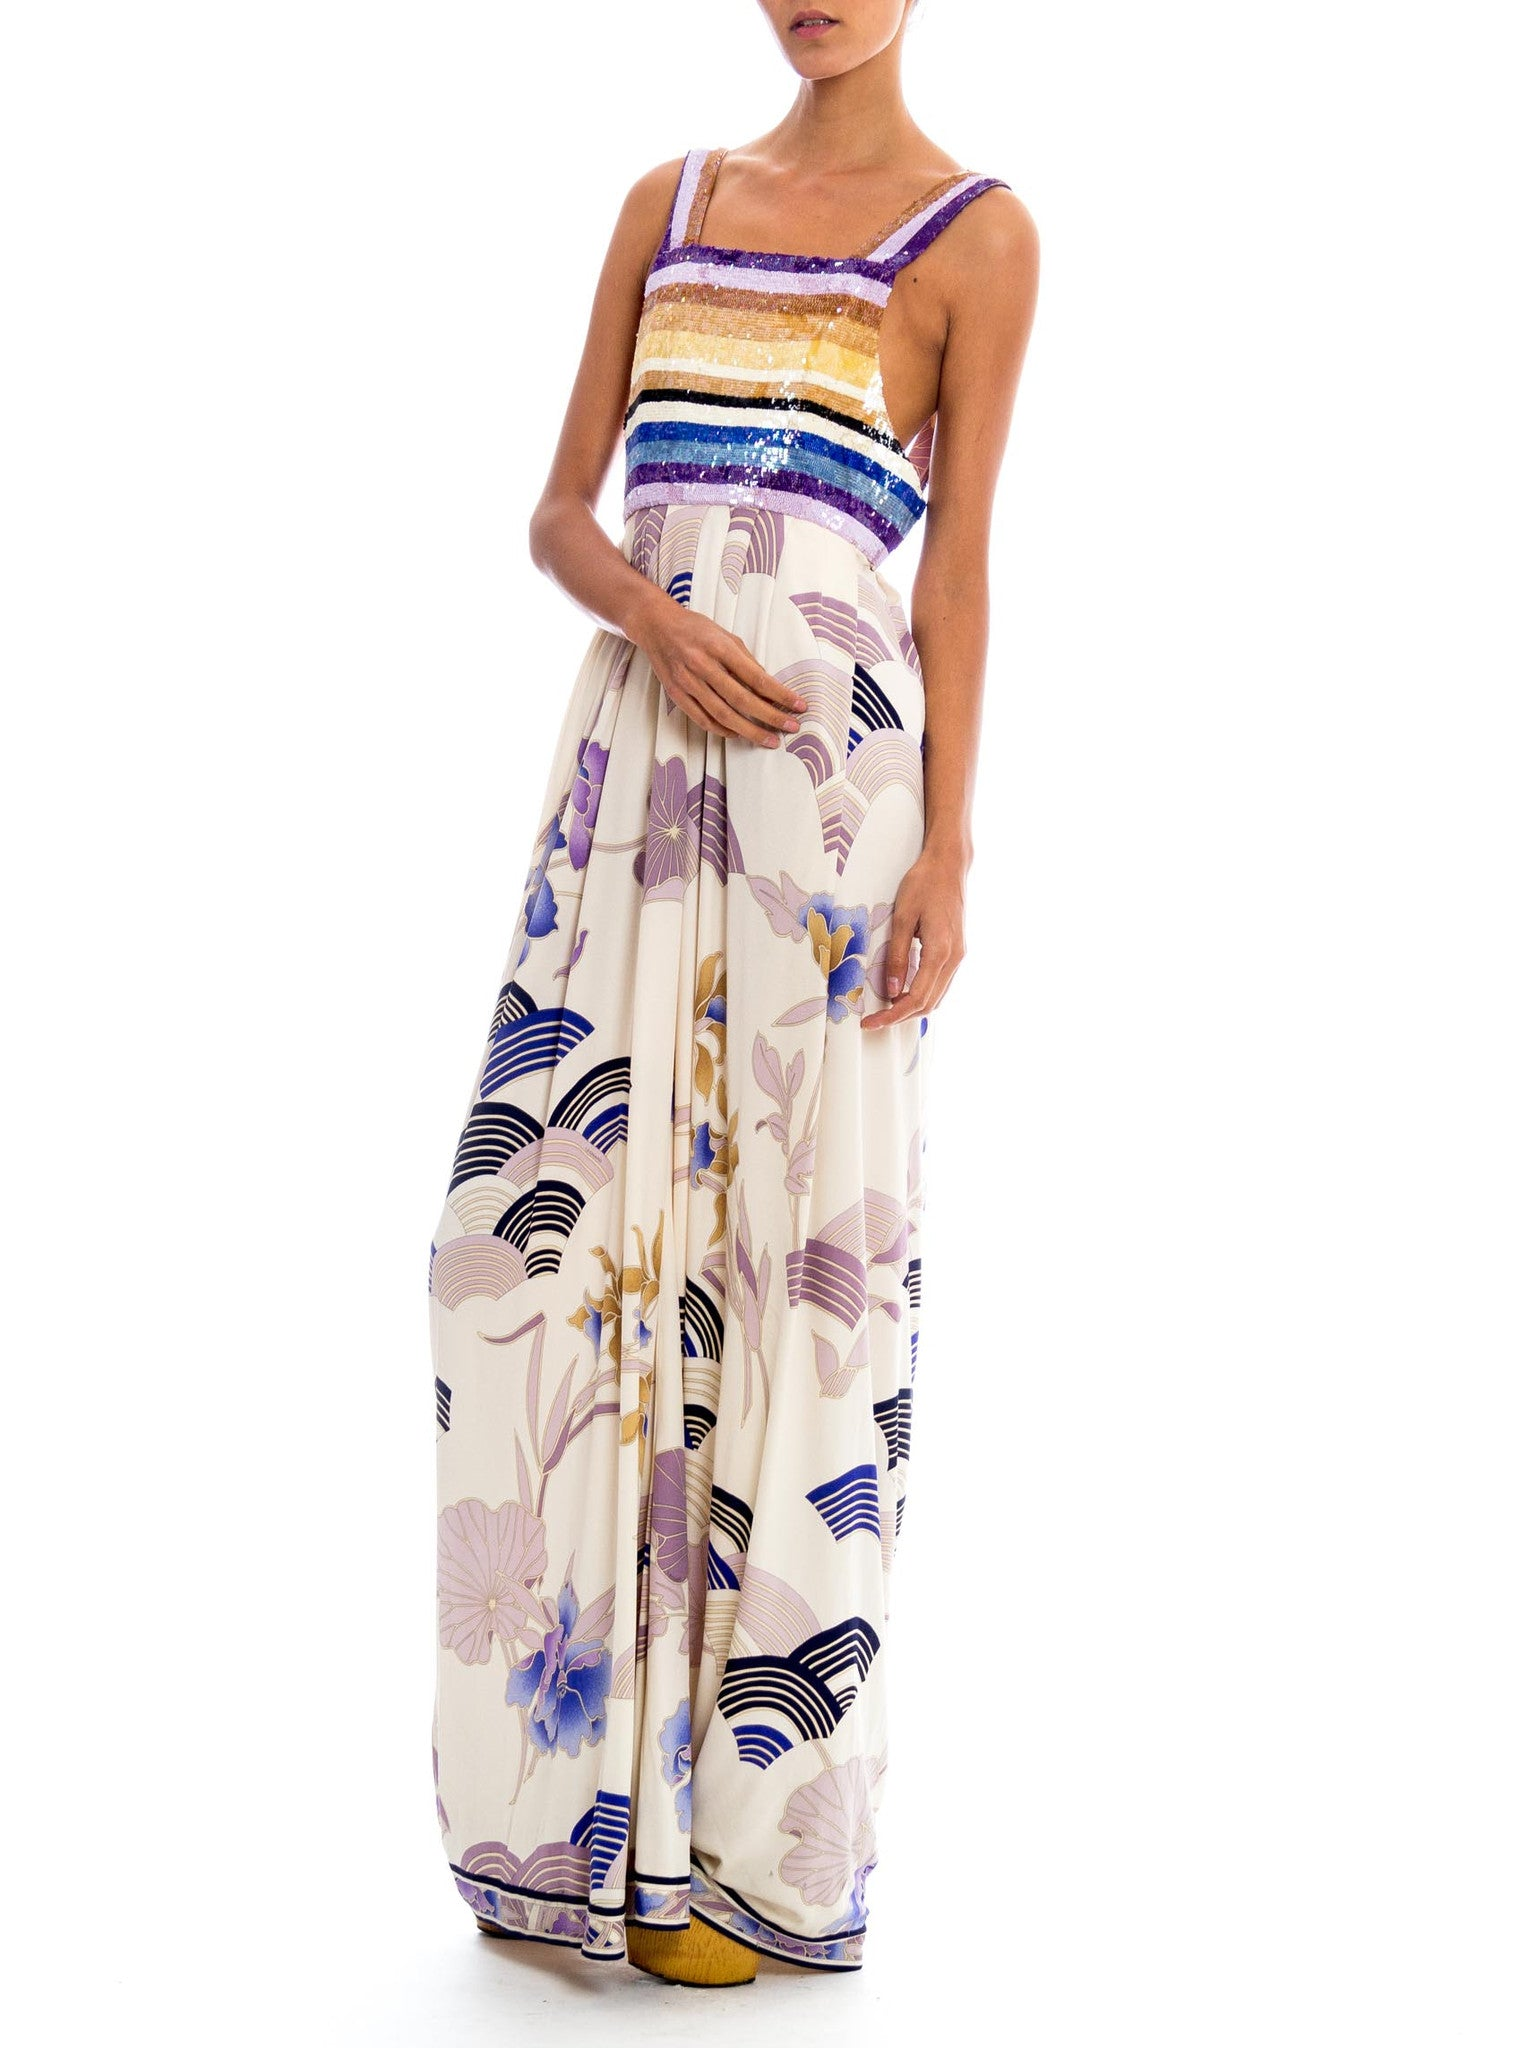 1990S LEONARD Purple & Blue Silk Jersey Asian Floral Print Gown With Striped Sequined Bodice